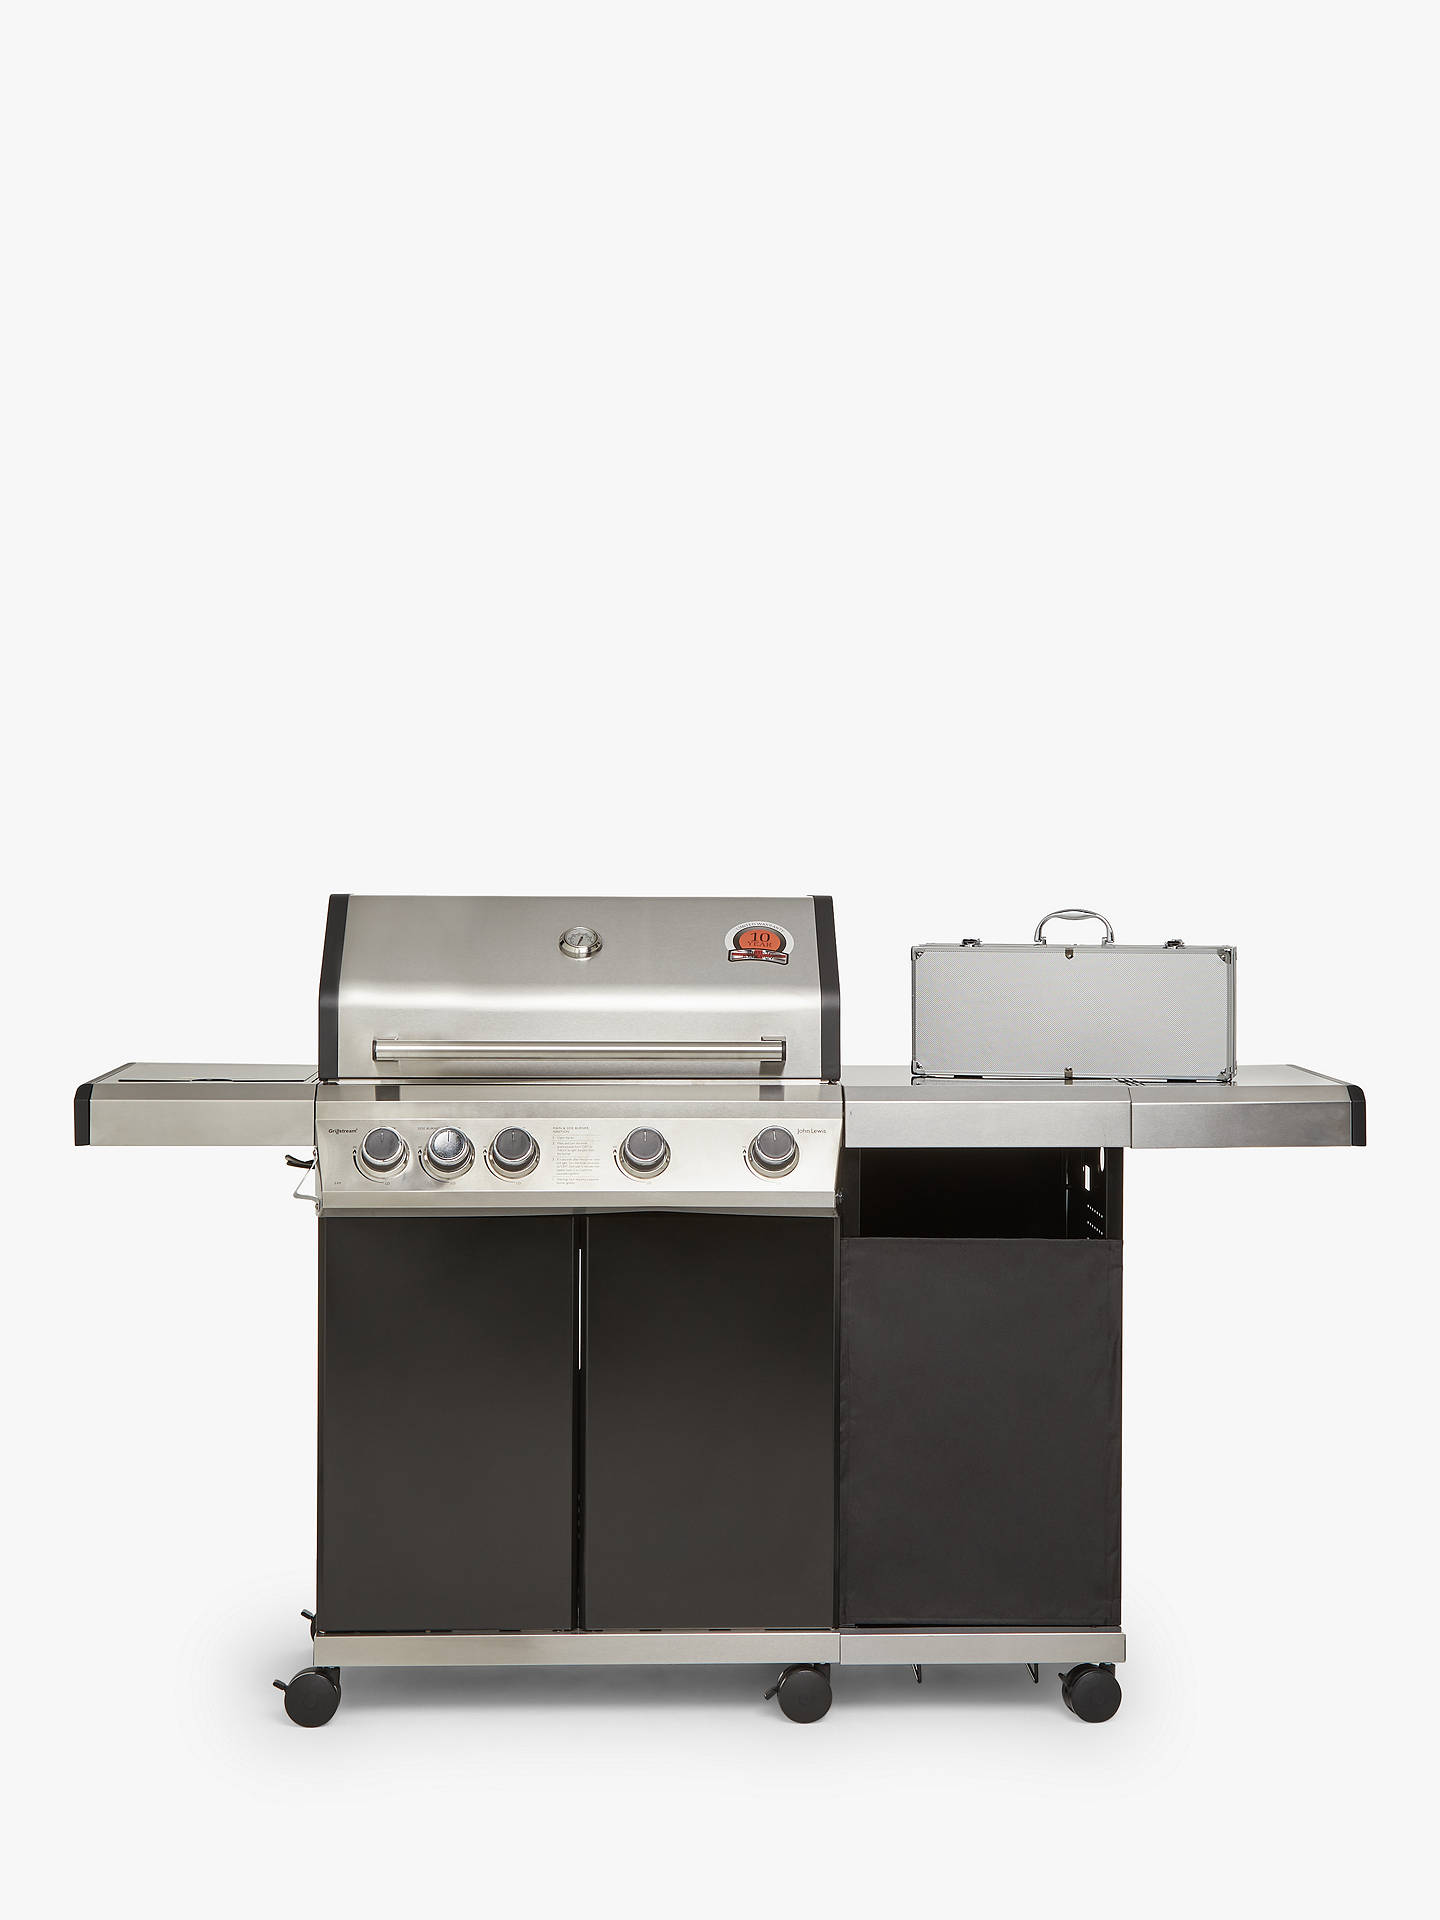 3c1d0949 ... Buy John Lewis & Partners 4 Burner Gas BBQ, Silver/Black Online at  johnlewis ...